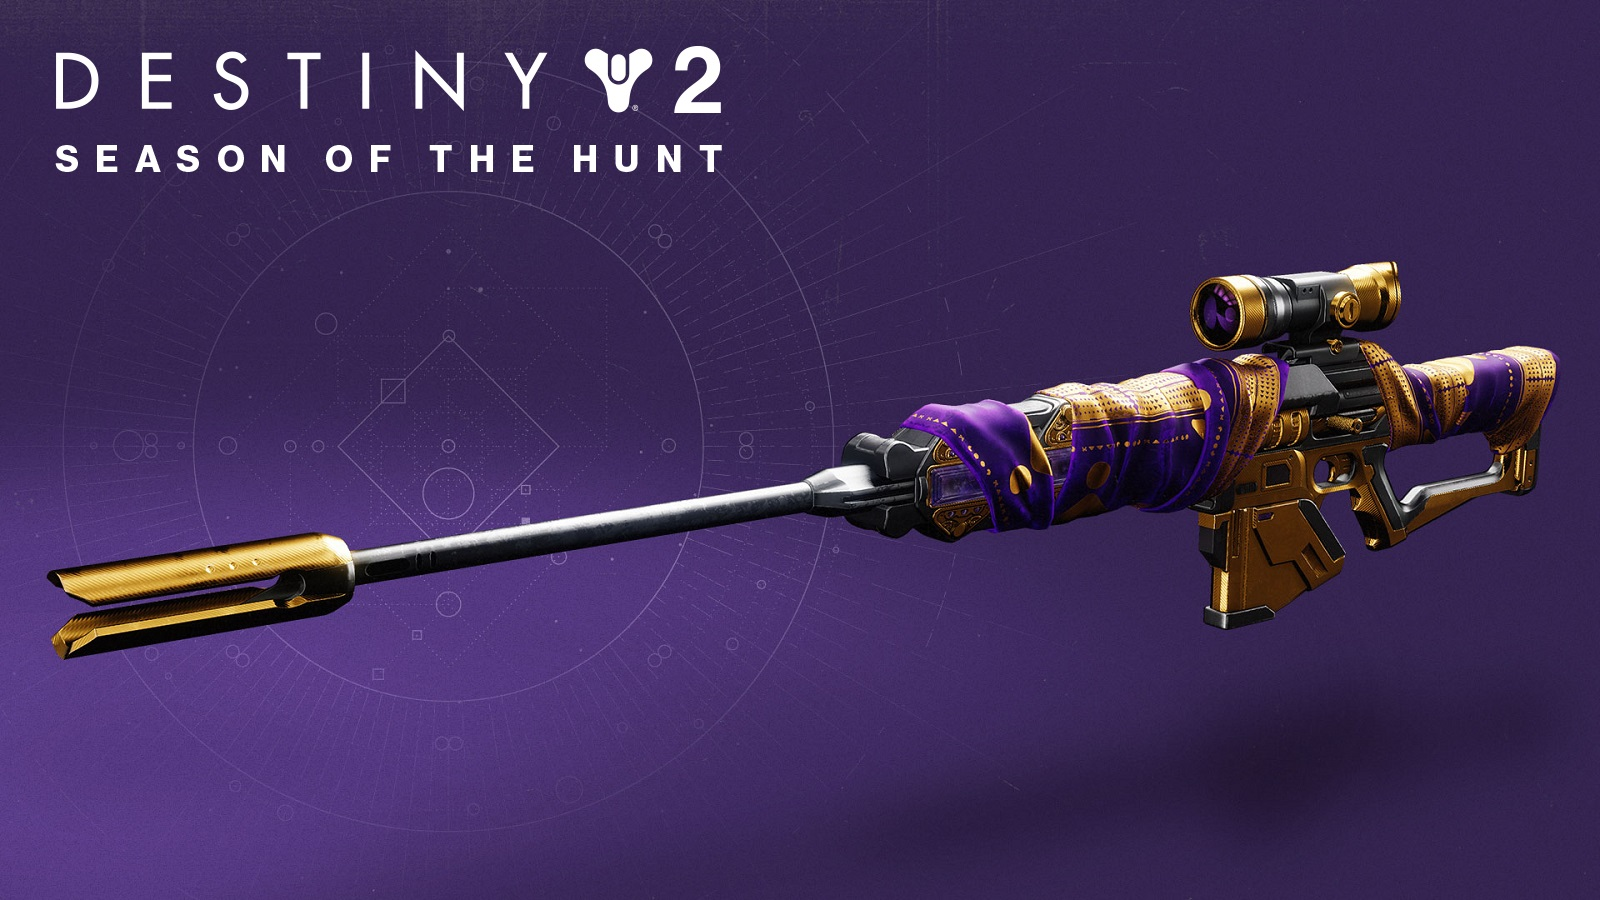 Destiny 2 Adored Sniper With Season of the Hunt Text